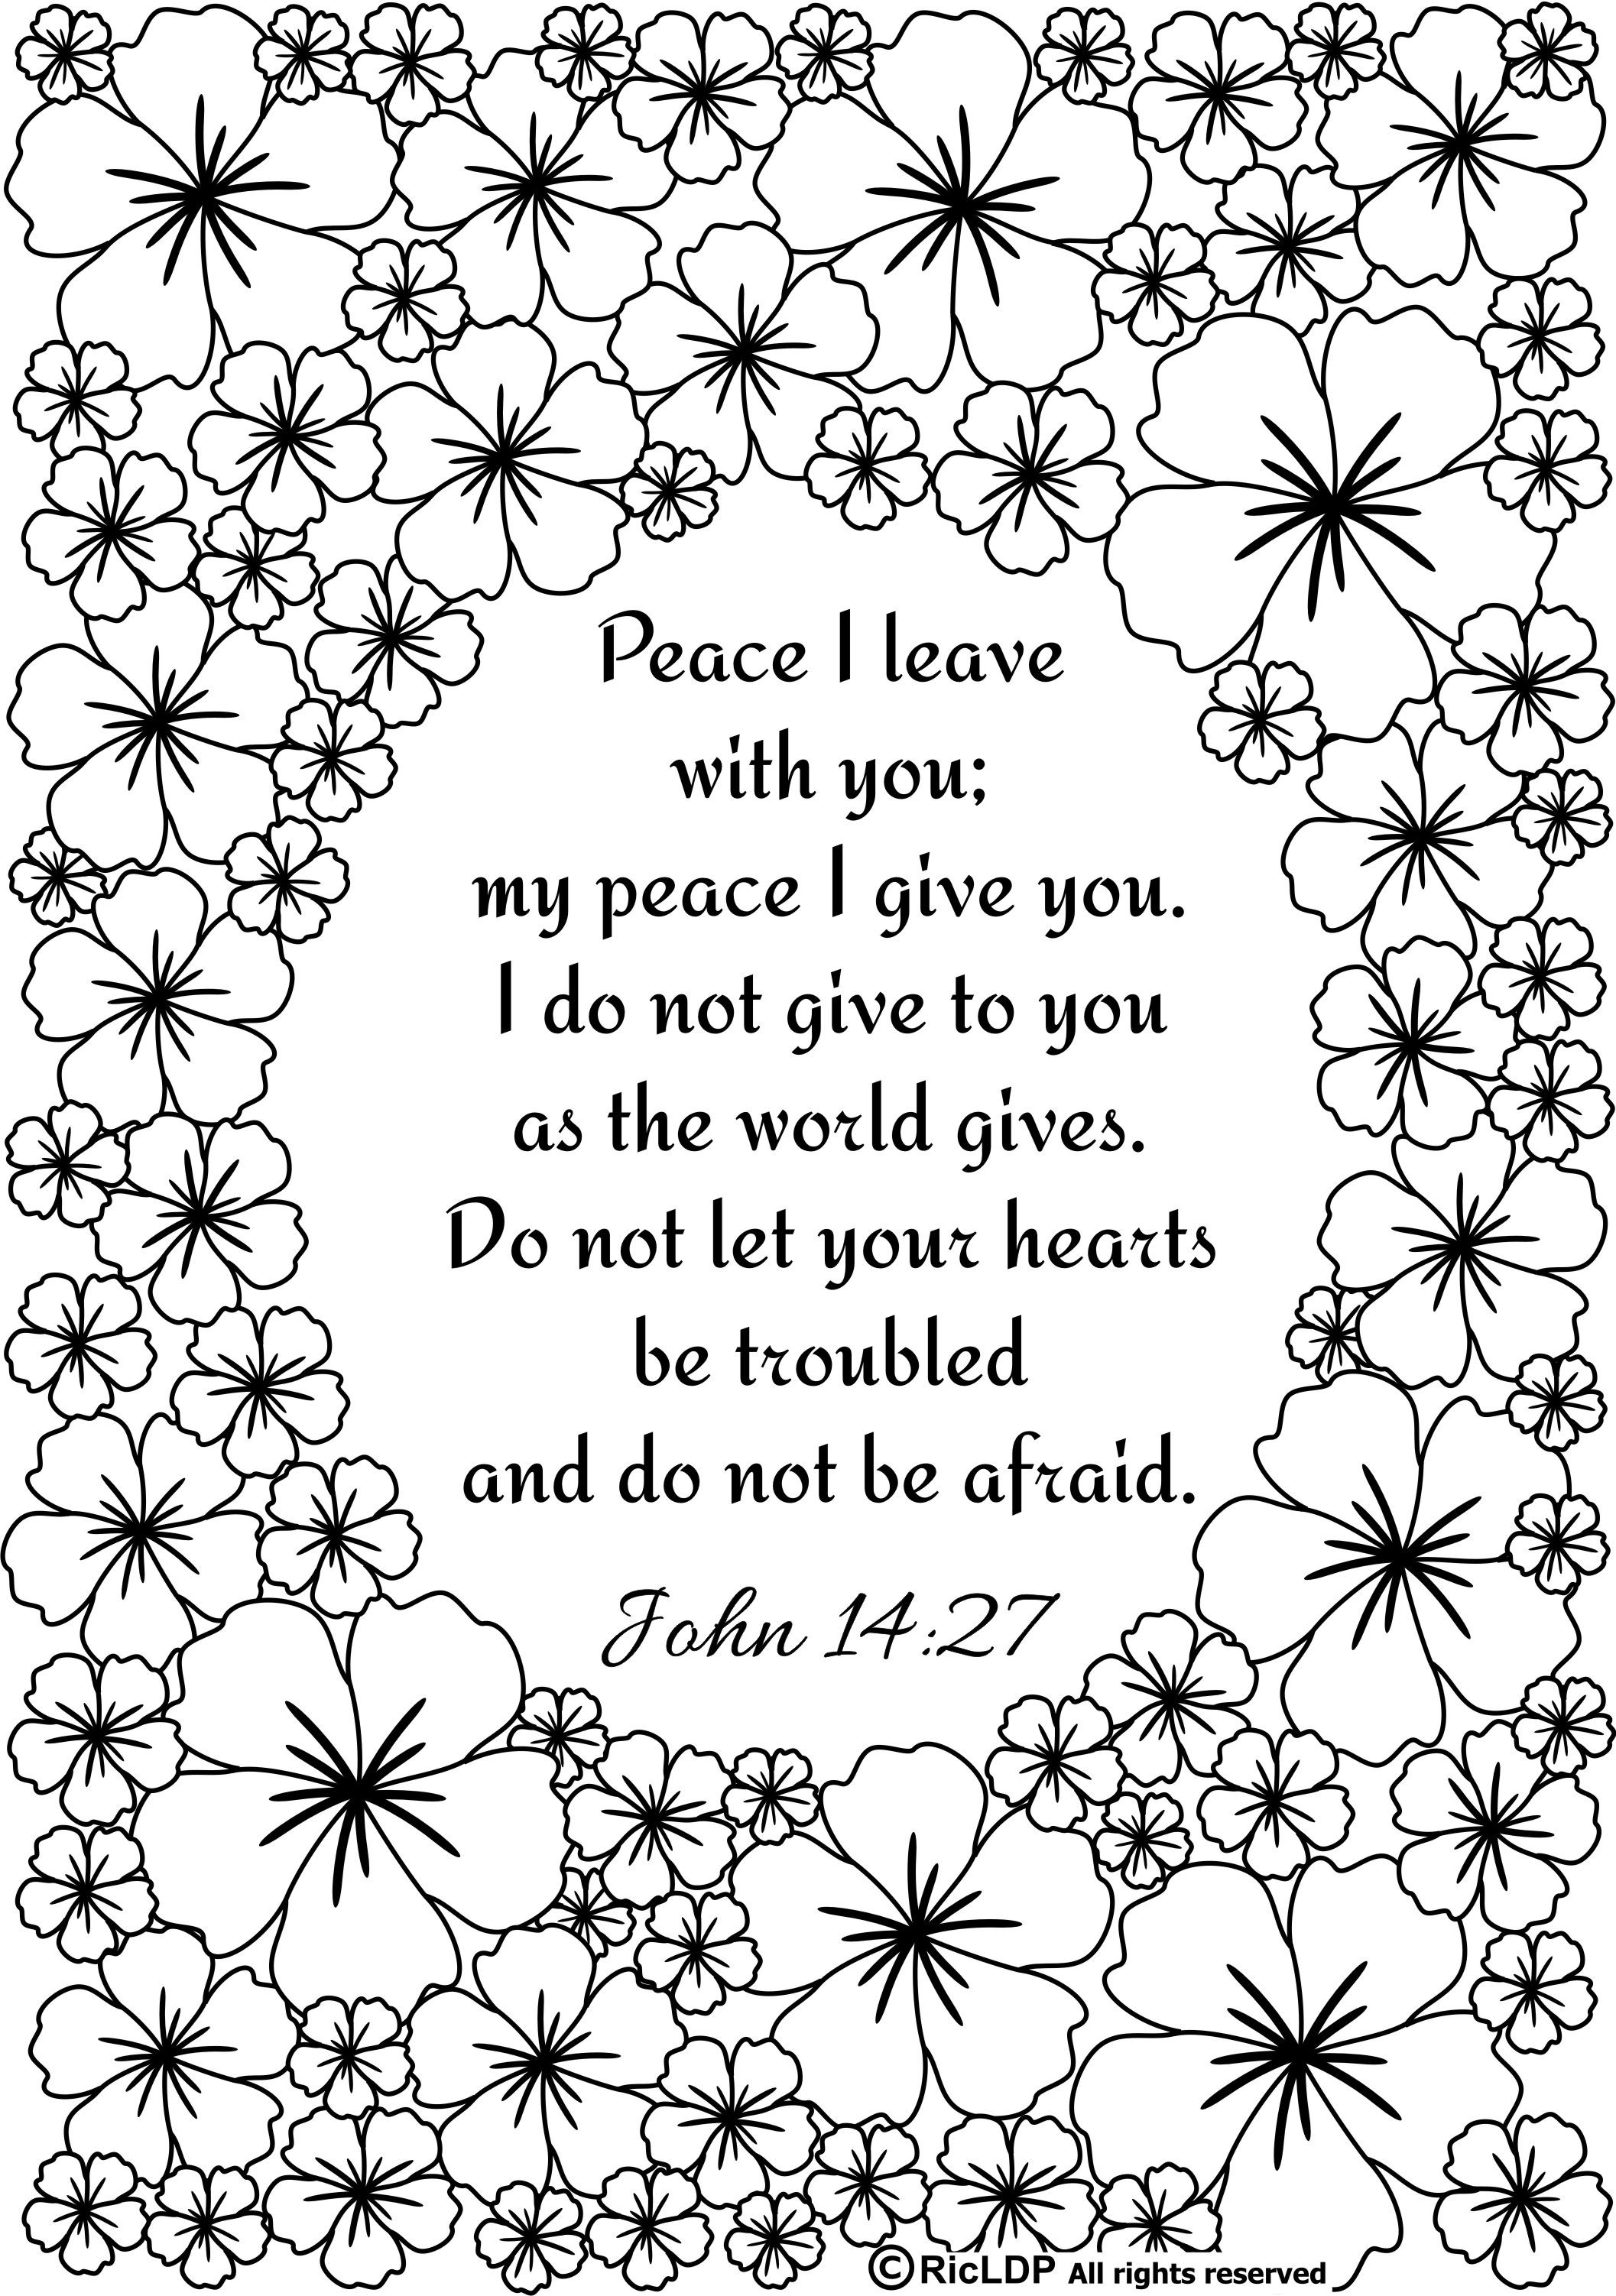 Ricldp Artworks (Ricldp)   Coloring Pages!!!   Pinterest   Bible - Free Printable Bible Coloring Pages